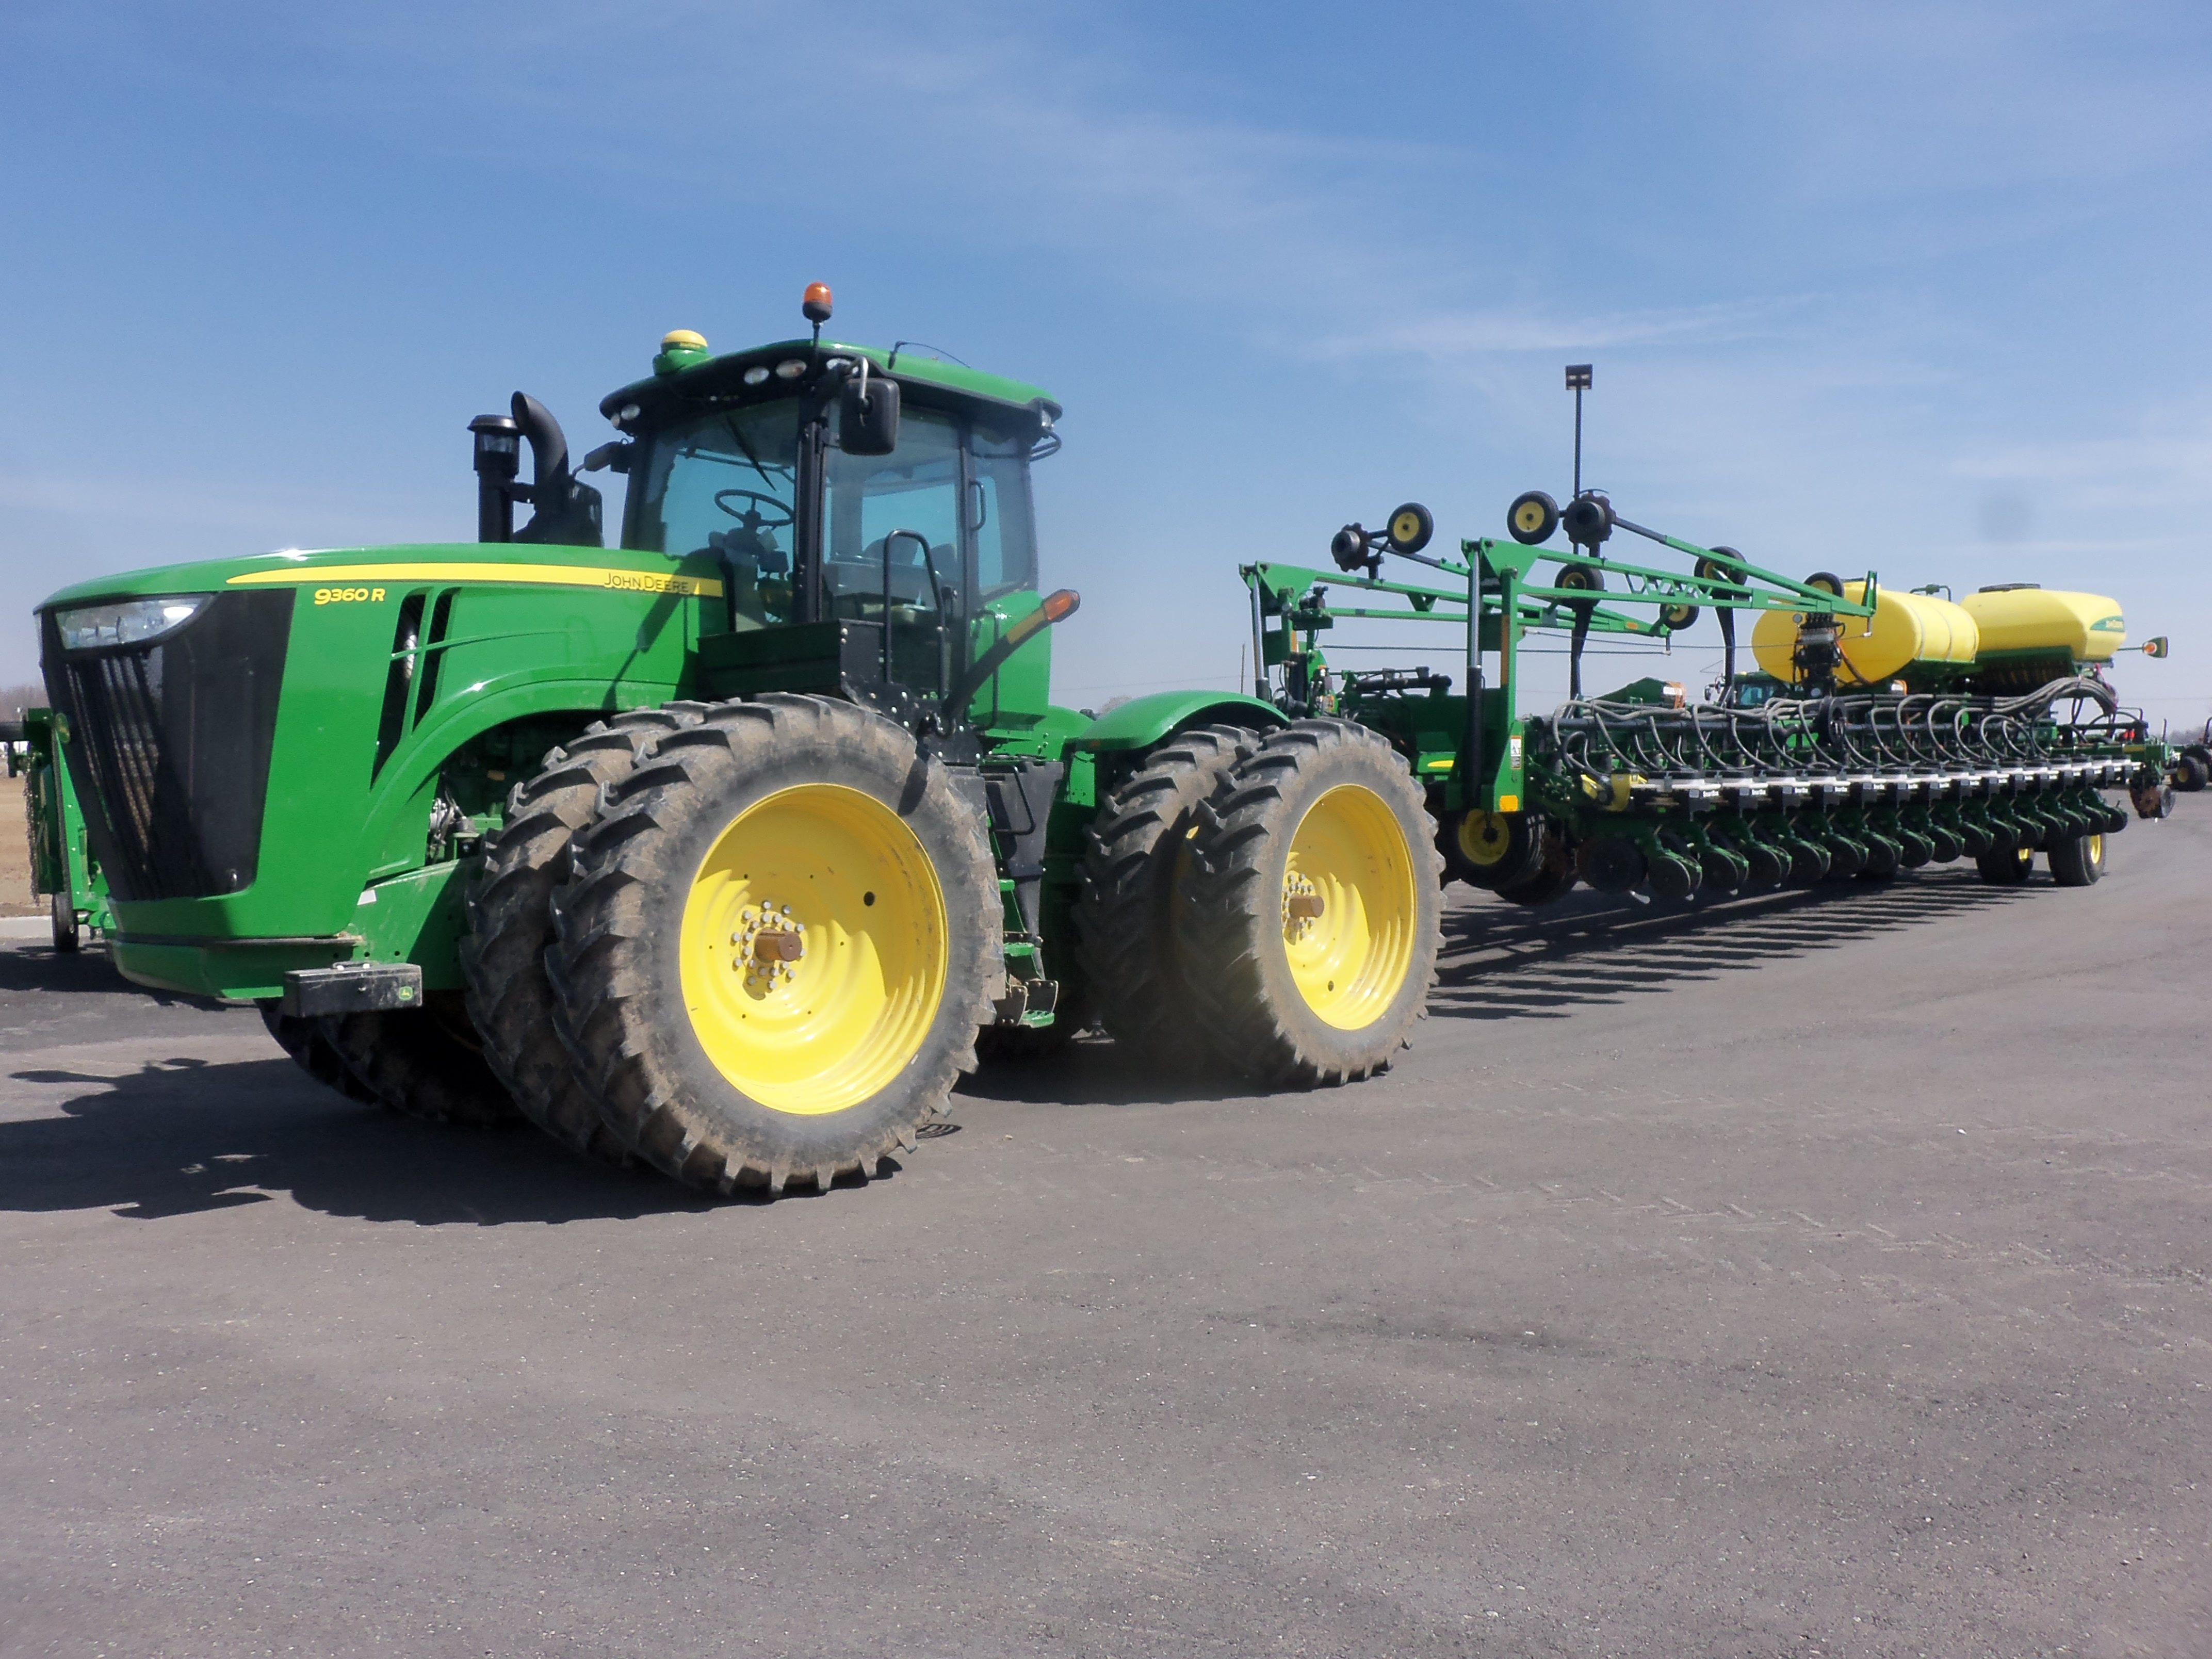 309 Pto Hp John Deere 9360r With 36 Row Db 90 Corn Planter In Tow